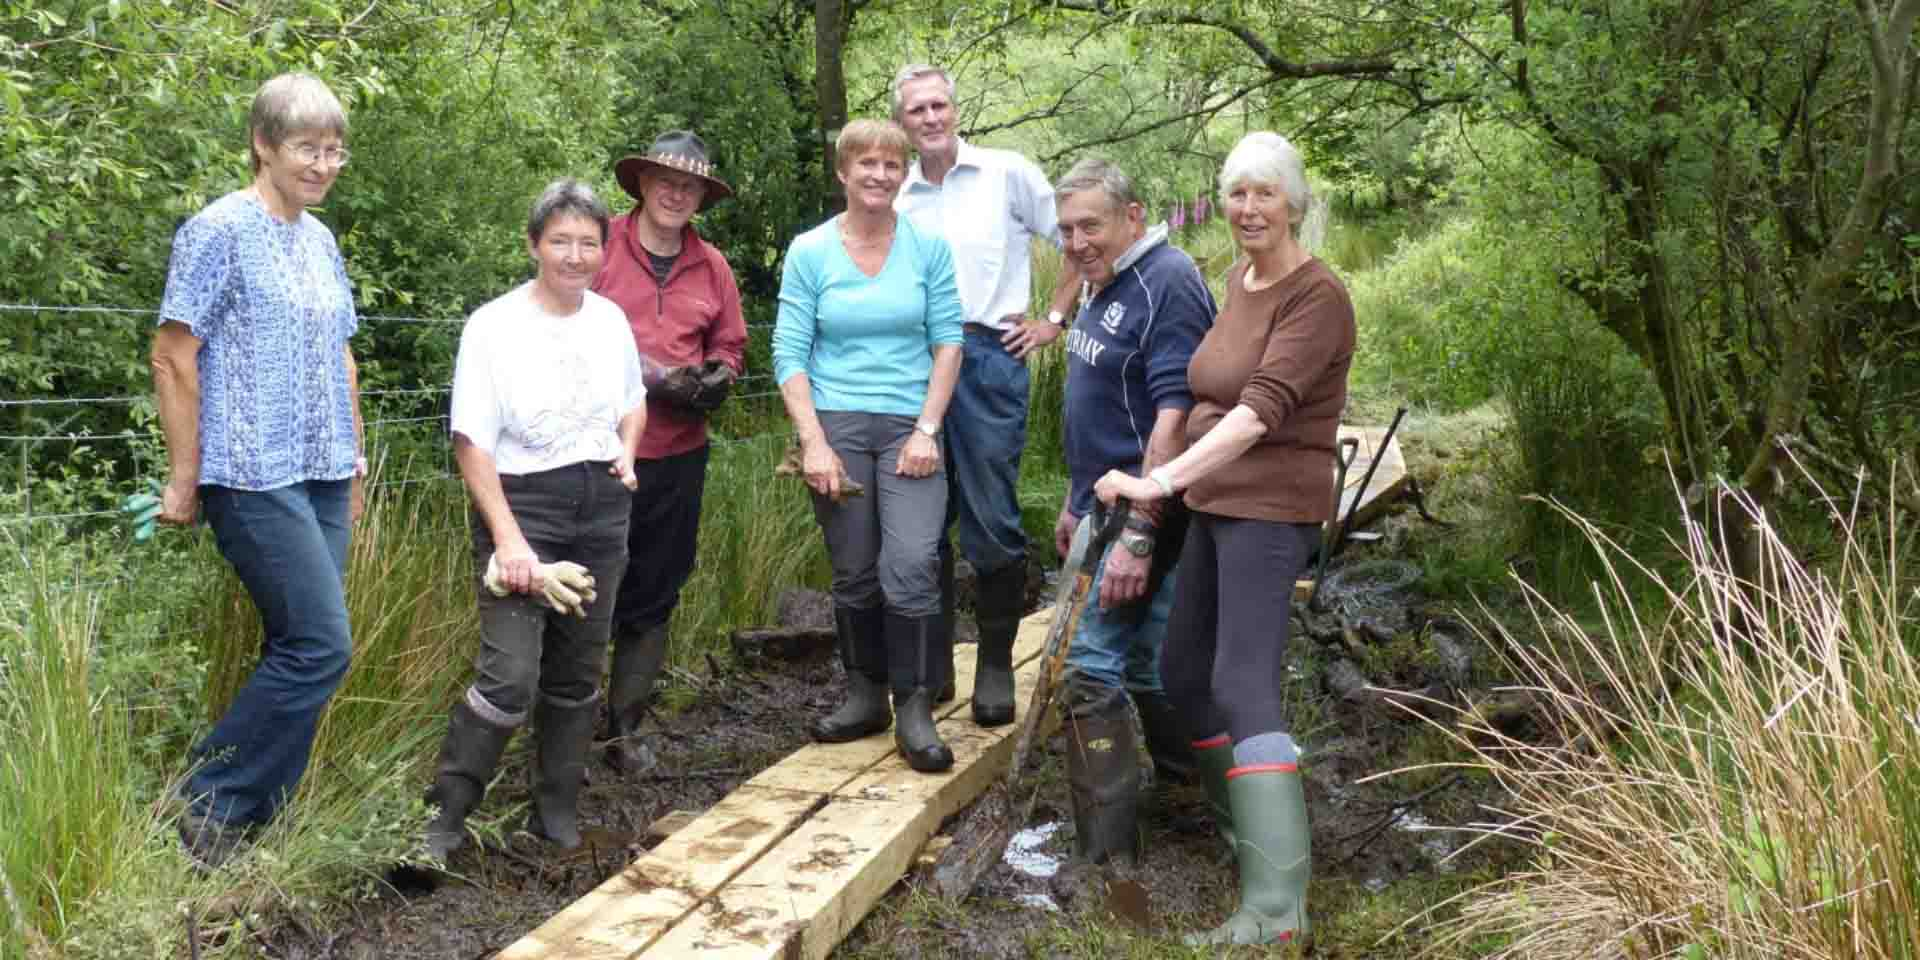 Volunteers building a boardwalk over the marshy ground